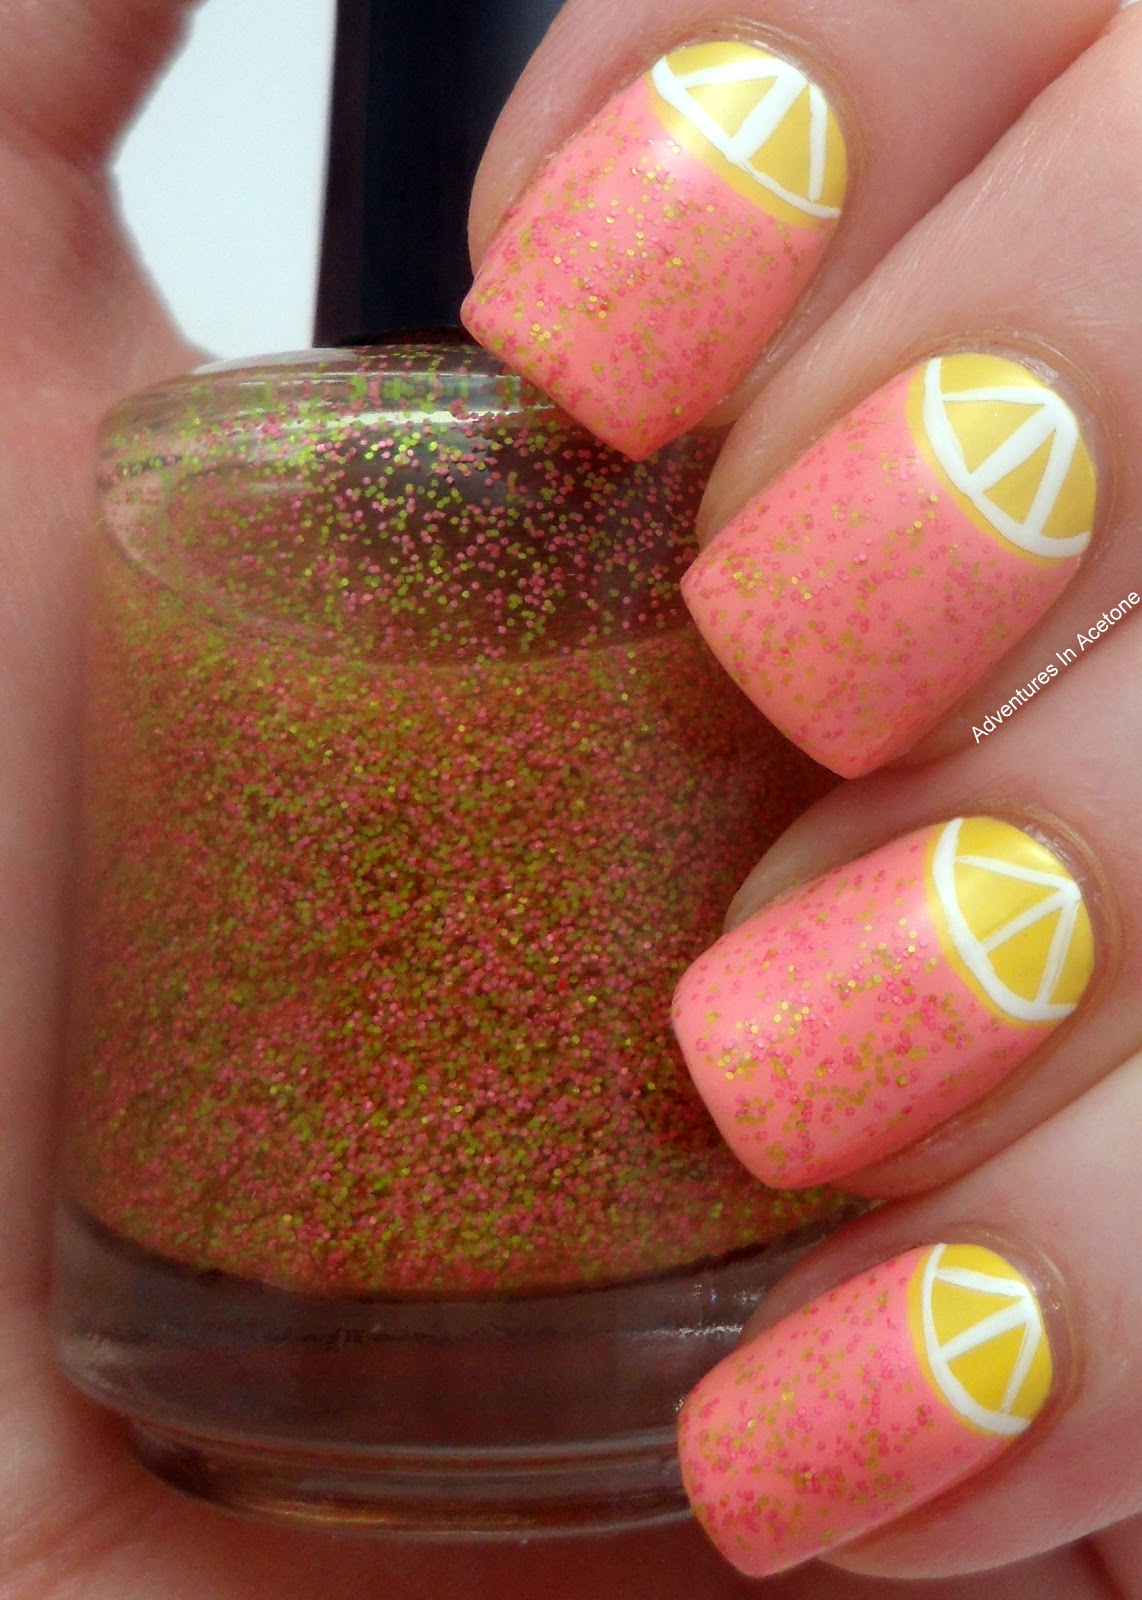 I Did A Coat Of This Amy S Nail Boutique Pink Lemonade Glitter Over U Pinky Swear For Some Added Fun Quick White Lines To Make My Half Moons